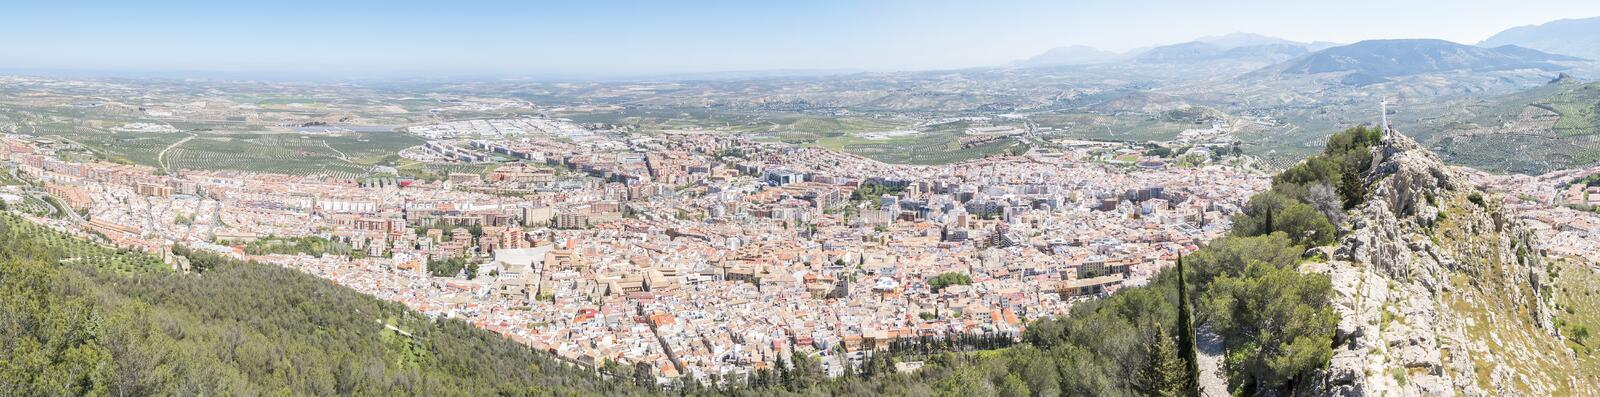 Panoramic Jaen city view from Santa Catalina Castle, Spain royalty free stock images